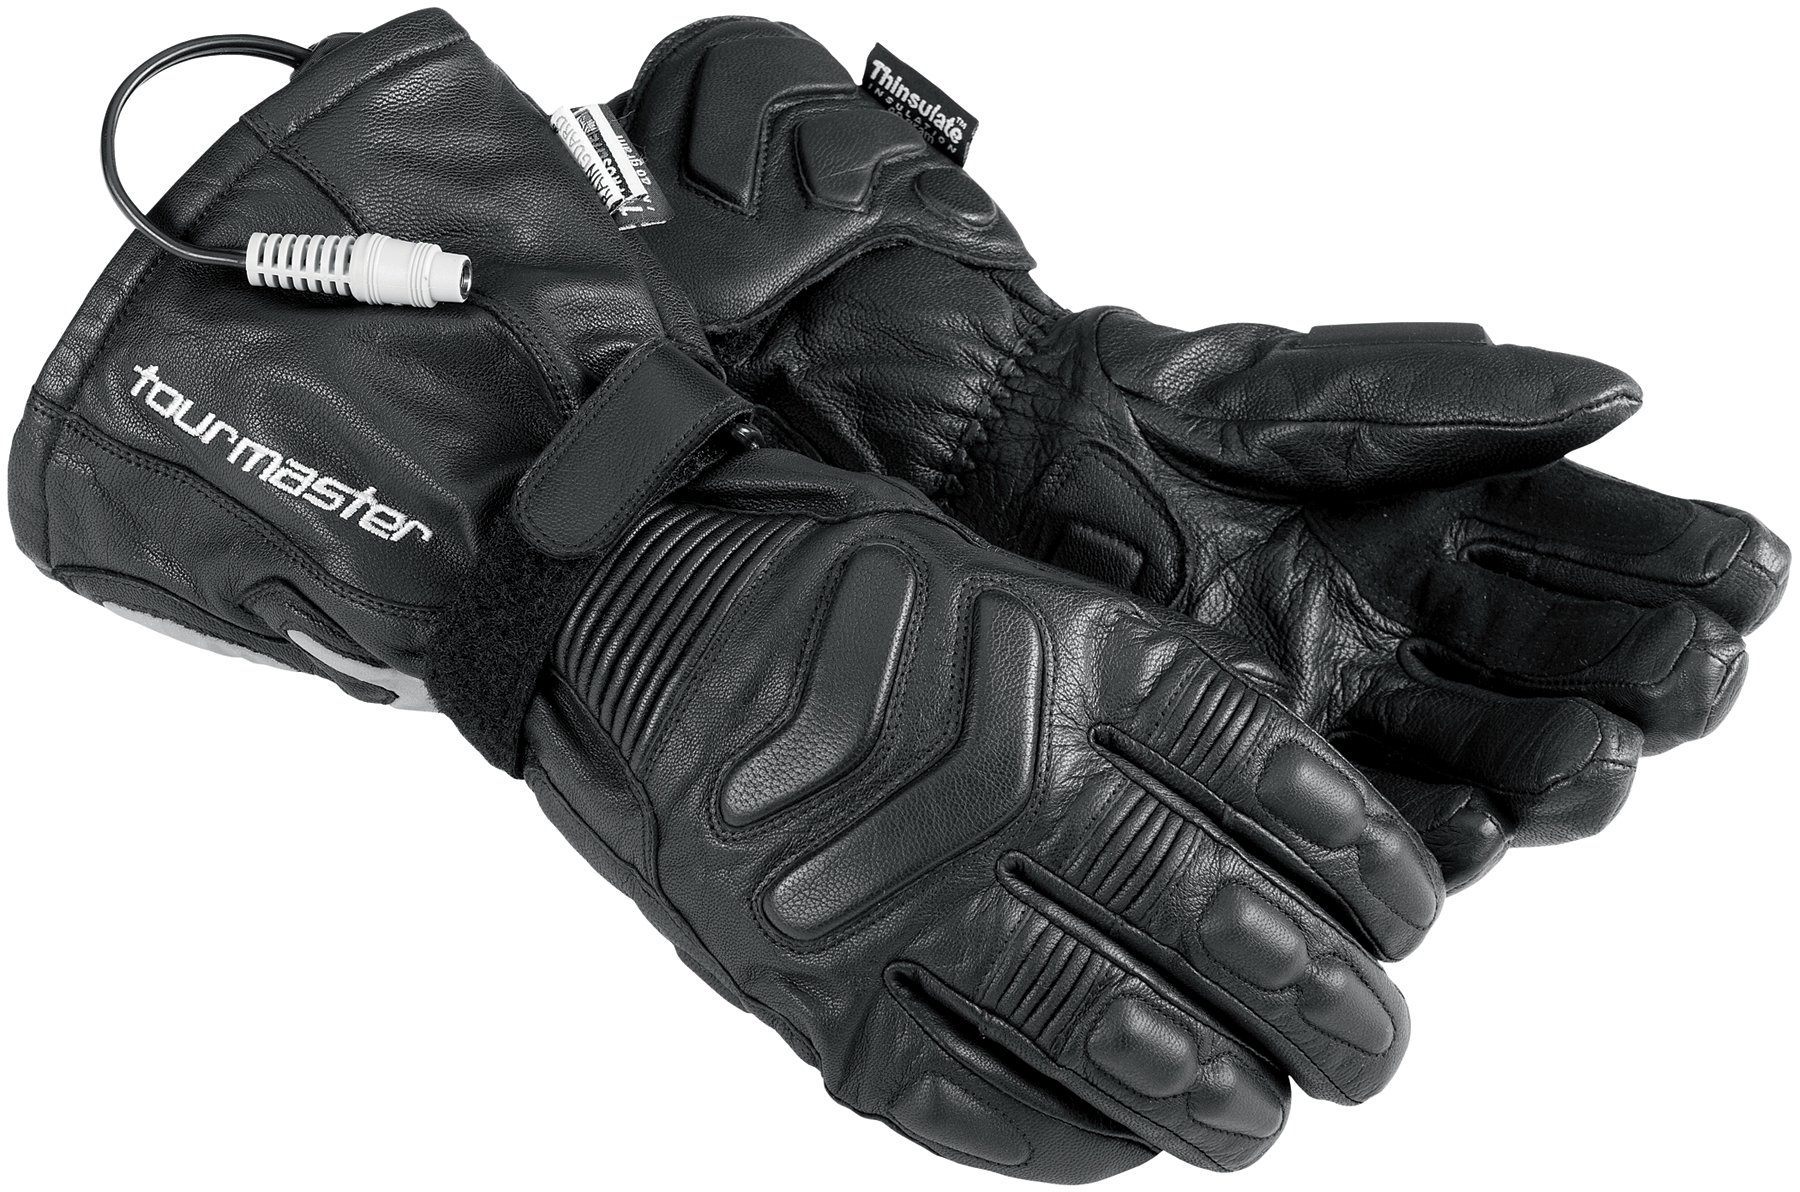 Tour Master Synergy 2.0 Electrically Heated Mens Leather Street Racing Motorcycle Gloves - Black / 4X-Large